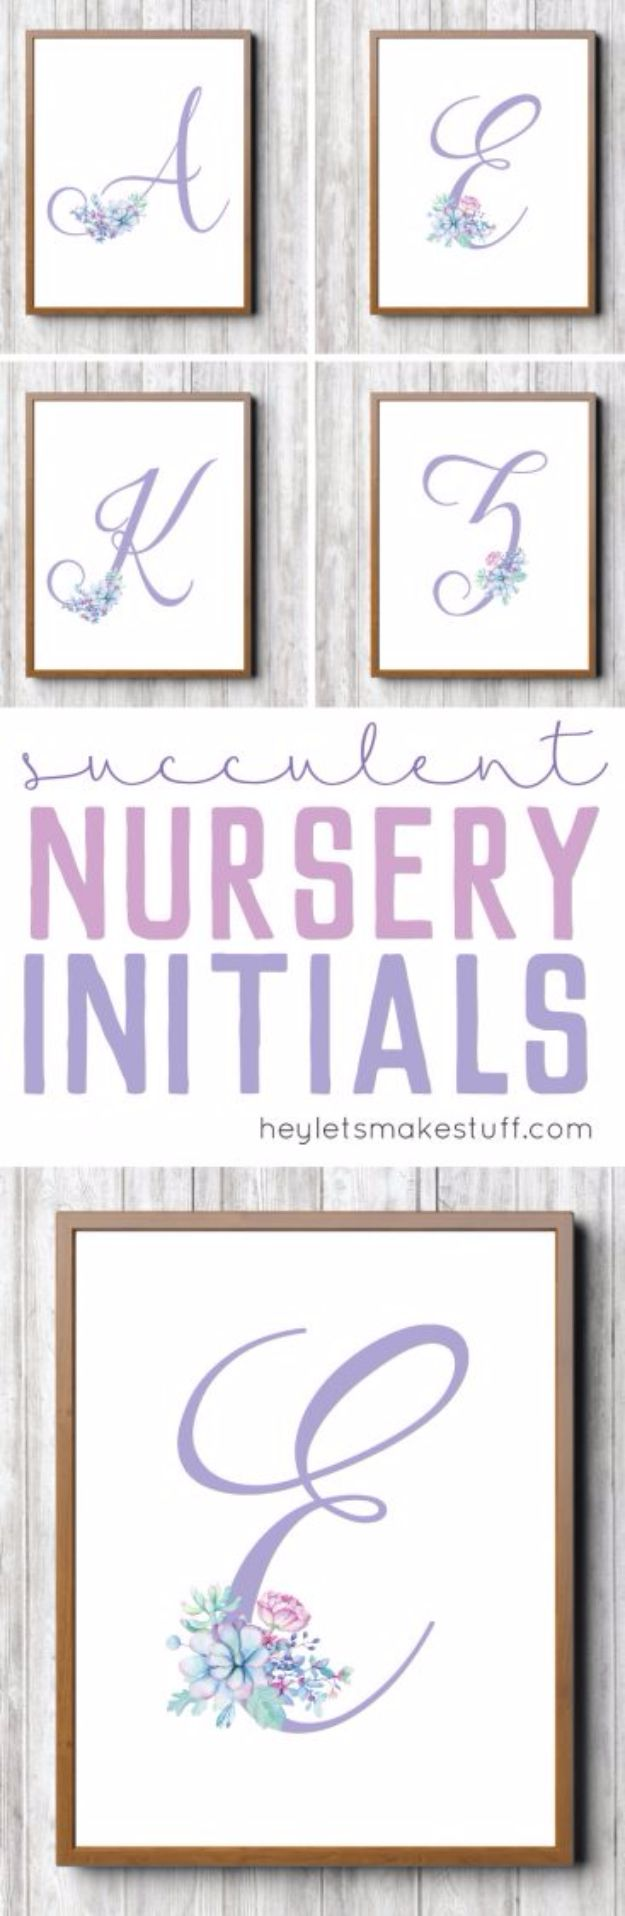 Best Free Printables for Crafts - Free Printable Purple Succulent Nursery Initials - Quotes, Templates, Paper Projects and Cards, DIY Gifts Cards, Stickers and Wall Art You Can Print At Home - Use These Fun Do It Yourself Template and Craft Ideas for Your Next Craft Projects - Cute Arts and Crafts Ideas for Kids and Adults to Make on Printer / Printable http://diyjoy.com/best-free-printables-crafts